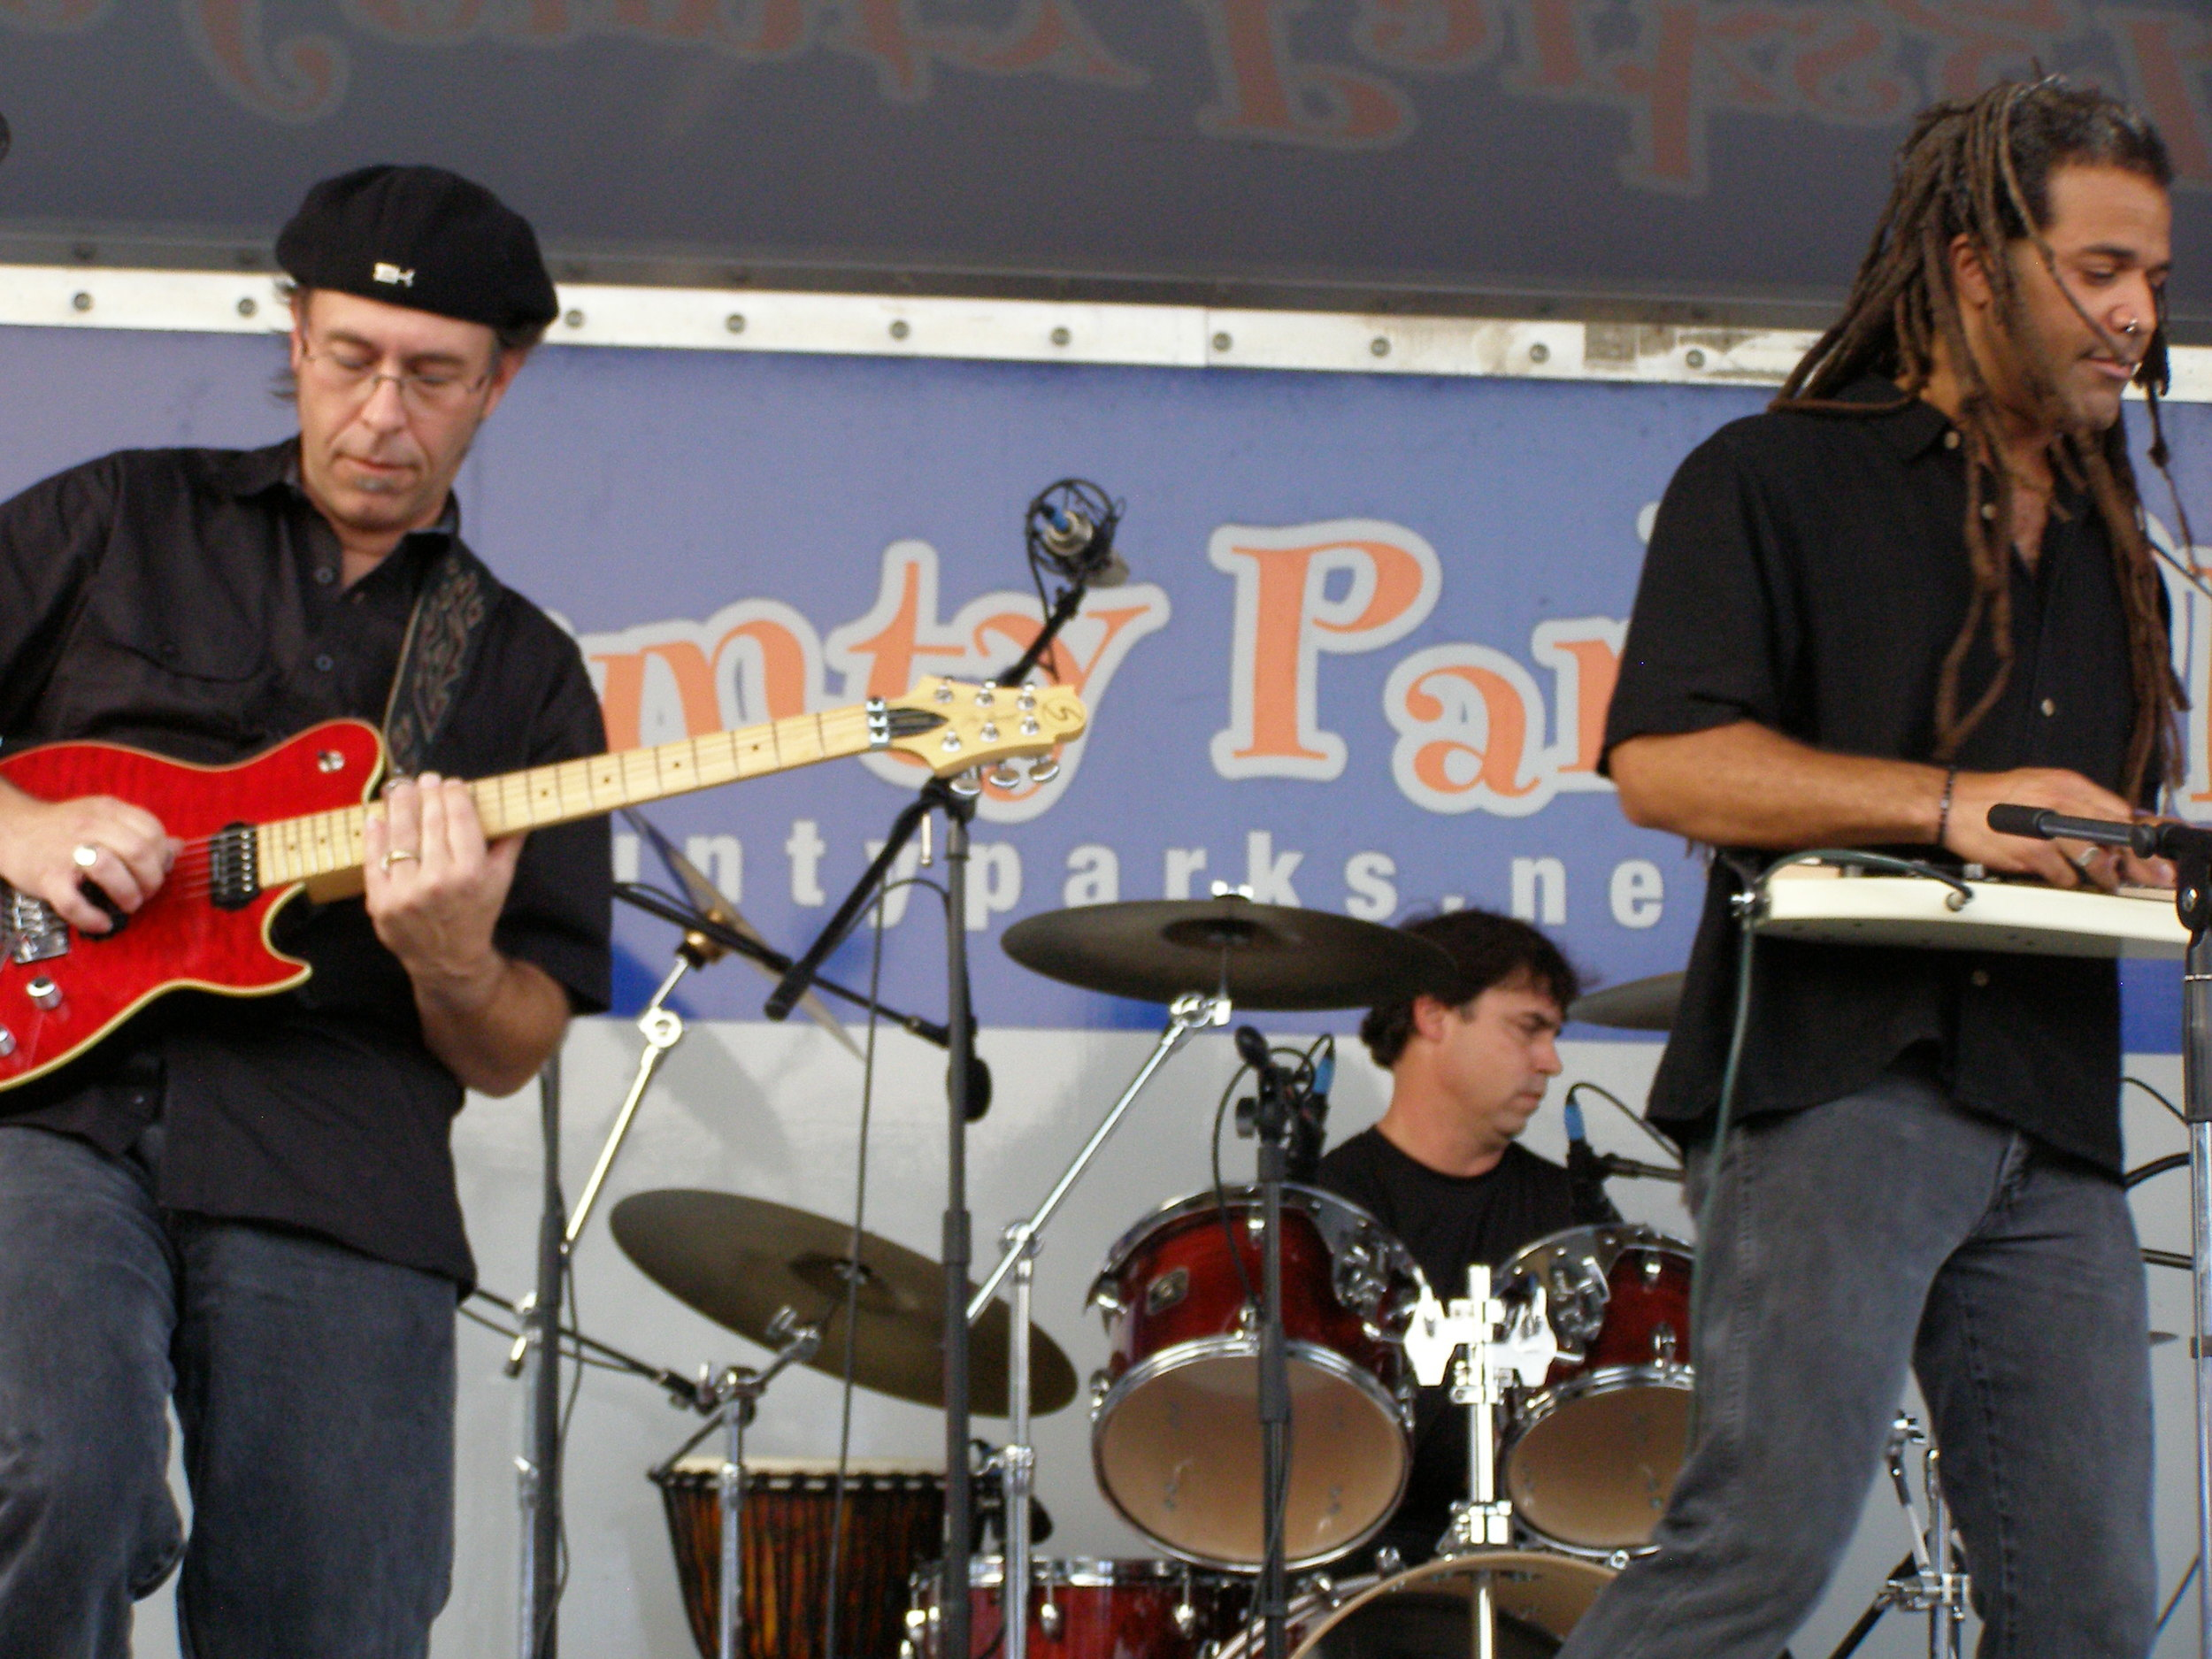 Performing with Mohave in 2008